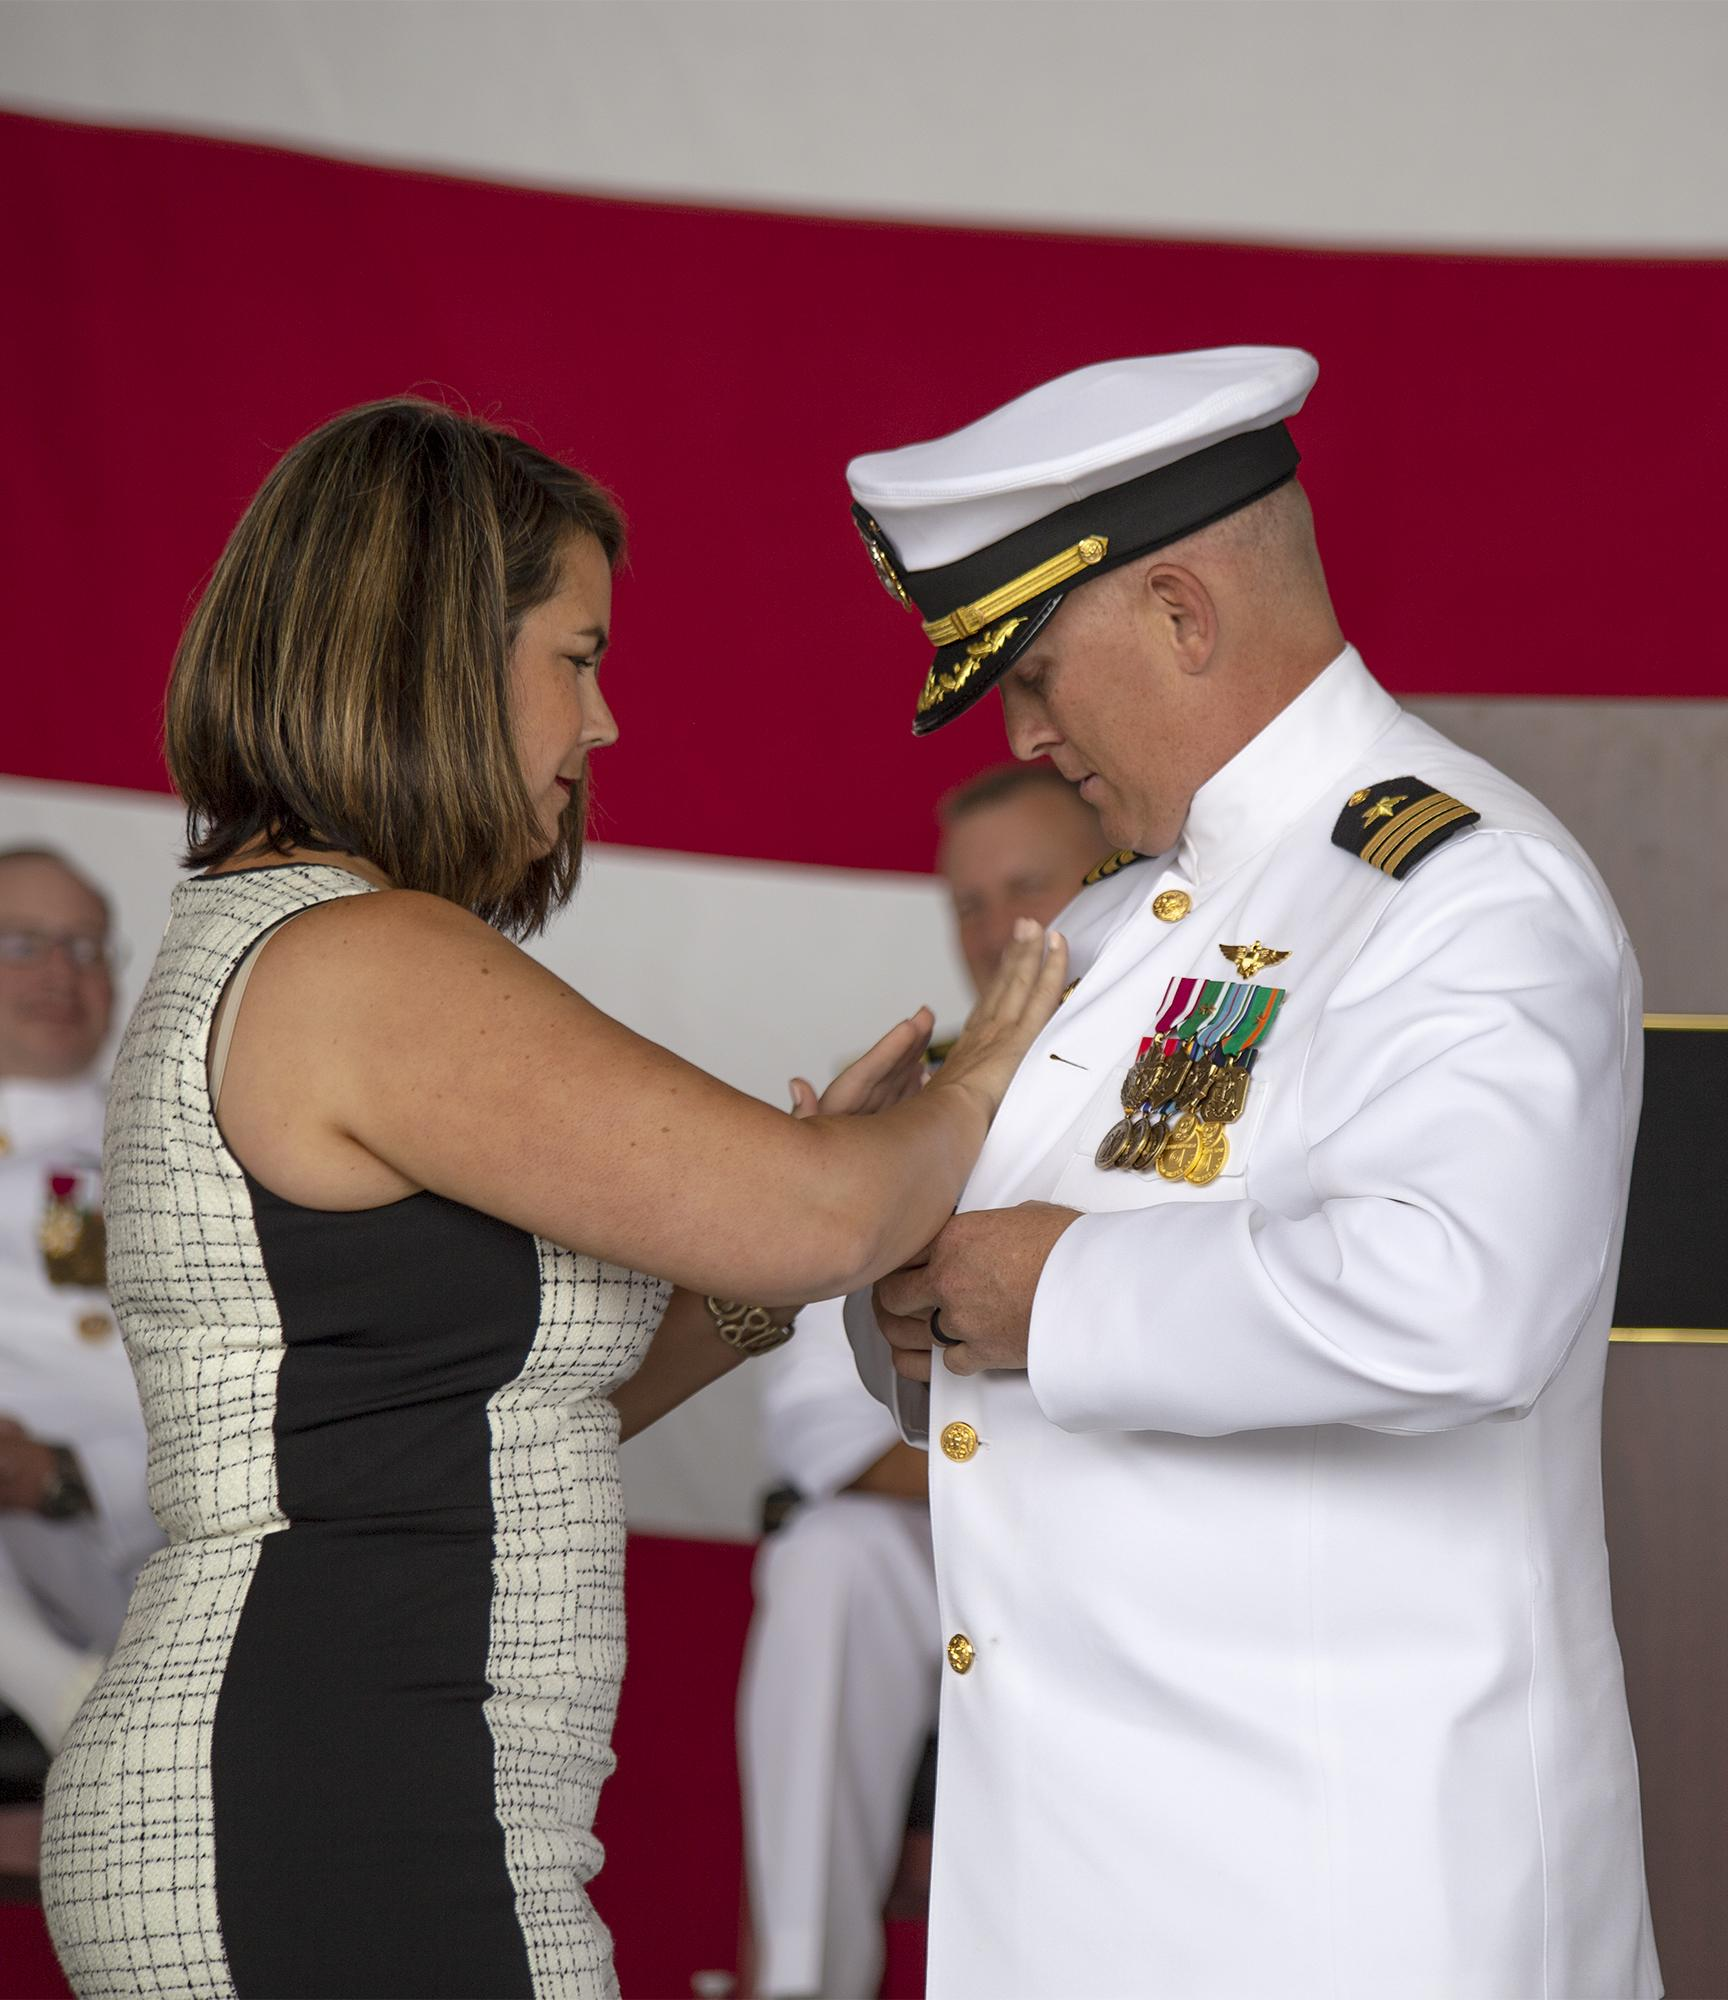 Cmdr. Paul Meyer receives his command pin from his wife